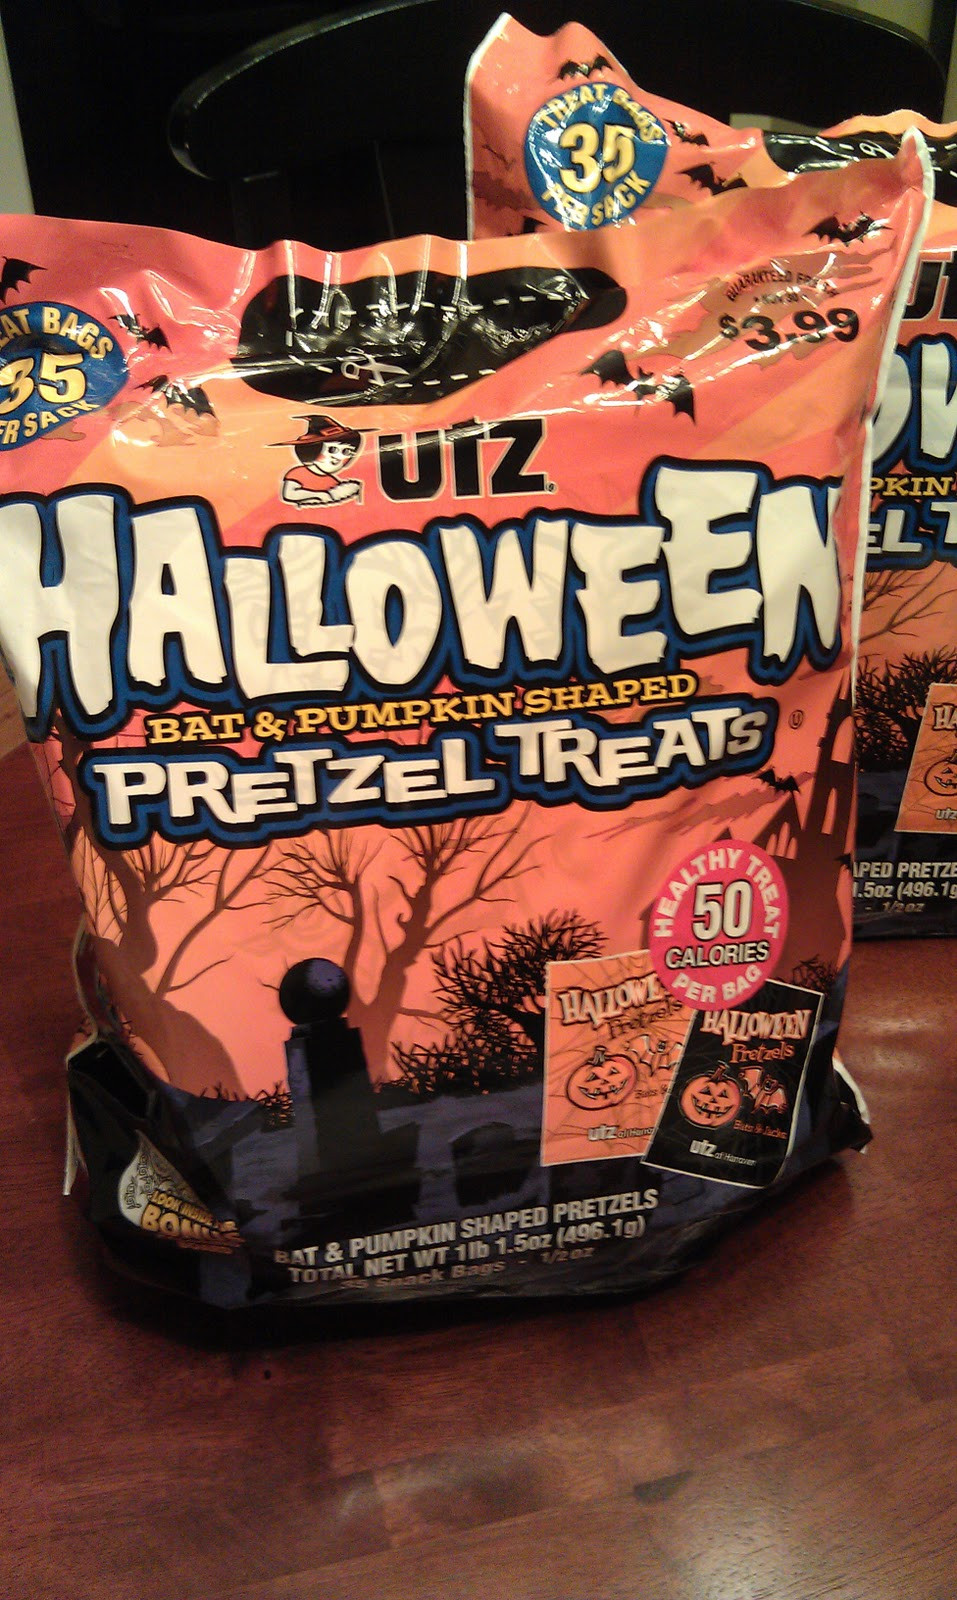 Utz Halloween Pretzels  Peanut Allergy Free Here We e Allergy Friendly